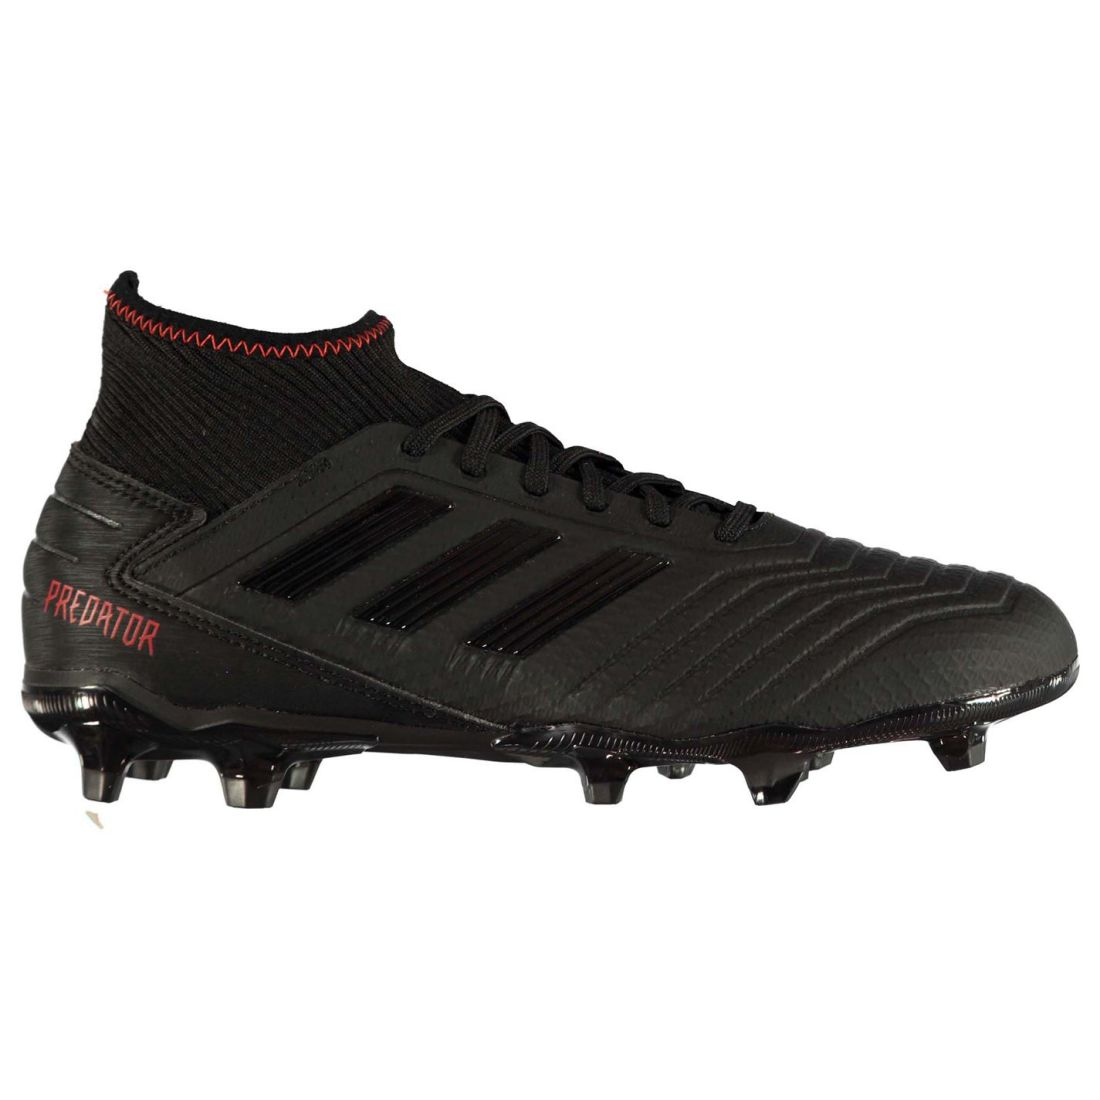 Adidas Mens Predator 19.3 FG Football Boots Firm Ground Lace Up Studs Stretch